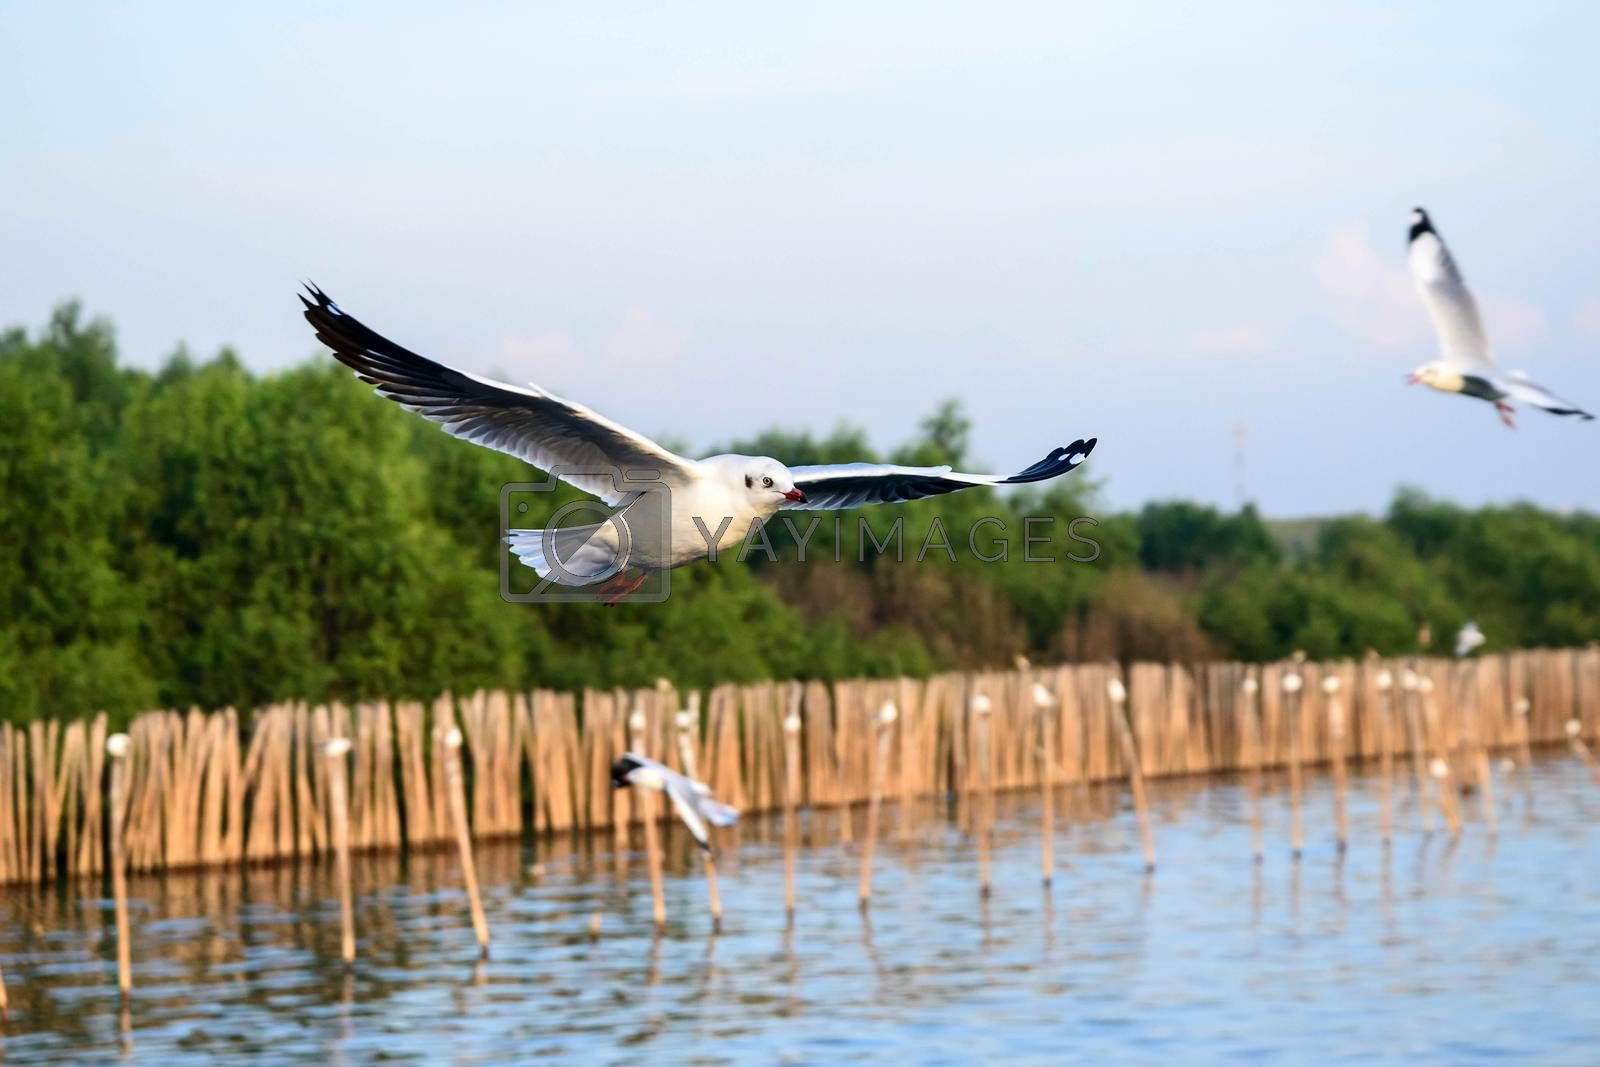 flying seagulls in action at Bangpoo Thailand by jakgree